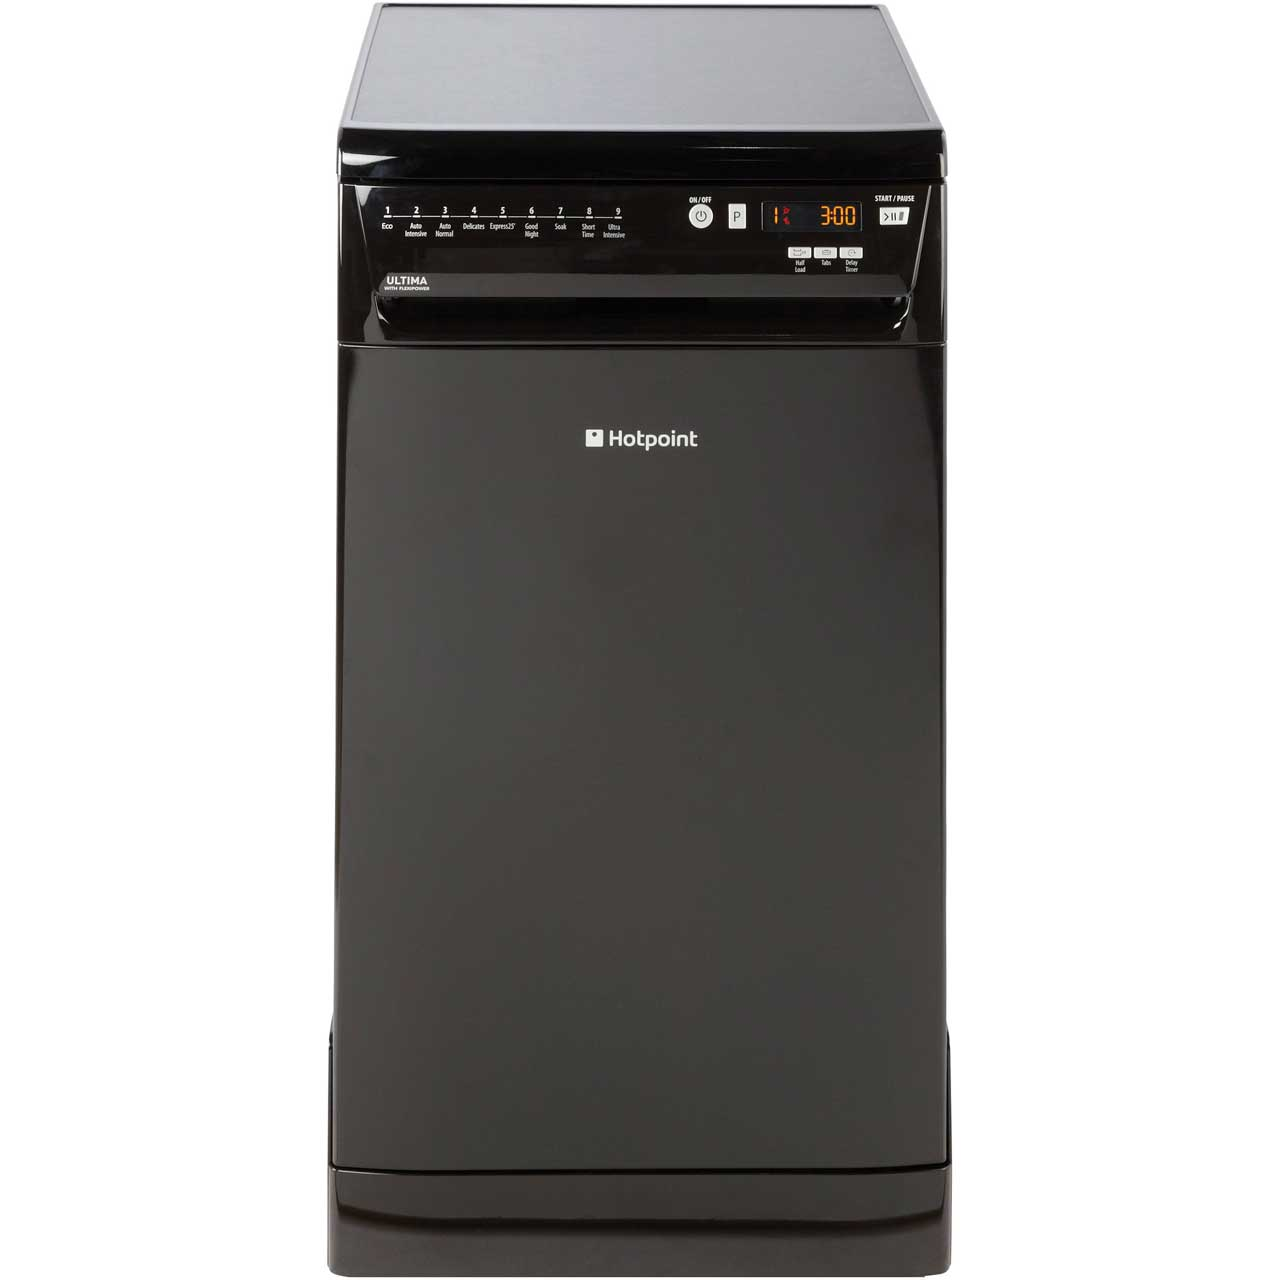 buy cheap hotpoint slimline dishwasher compare. Black Bedroom Furniture Sets. Home Design Ideas